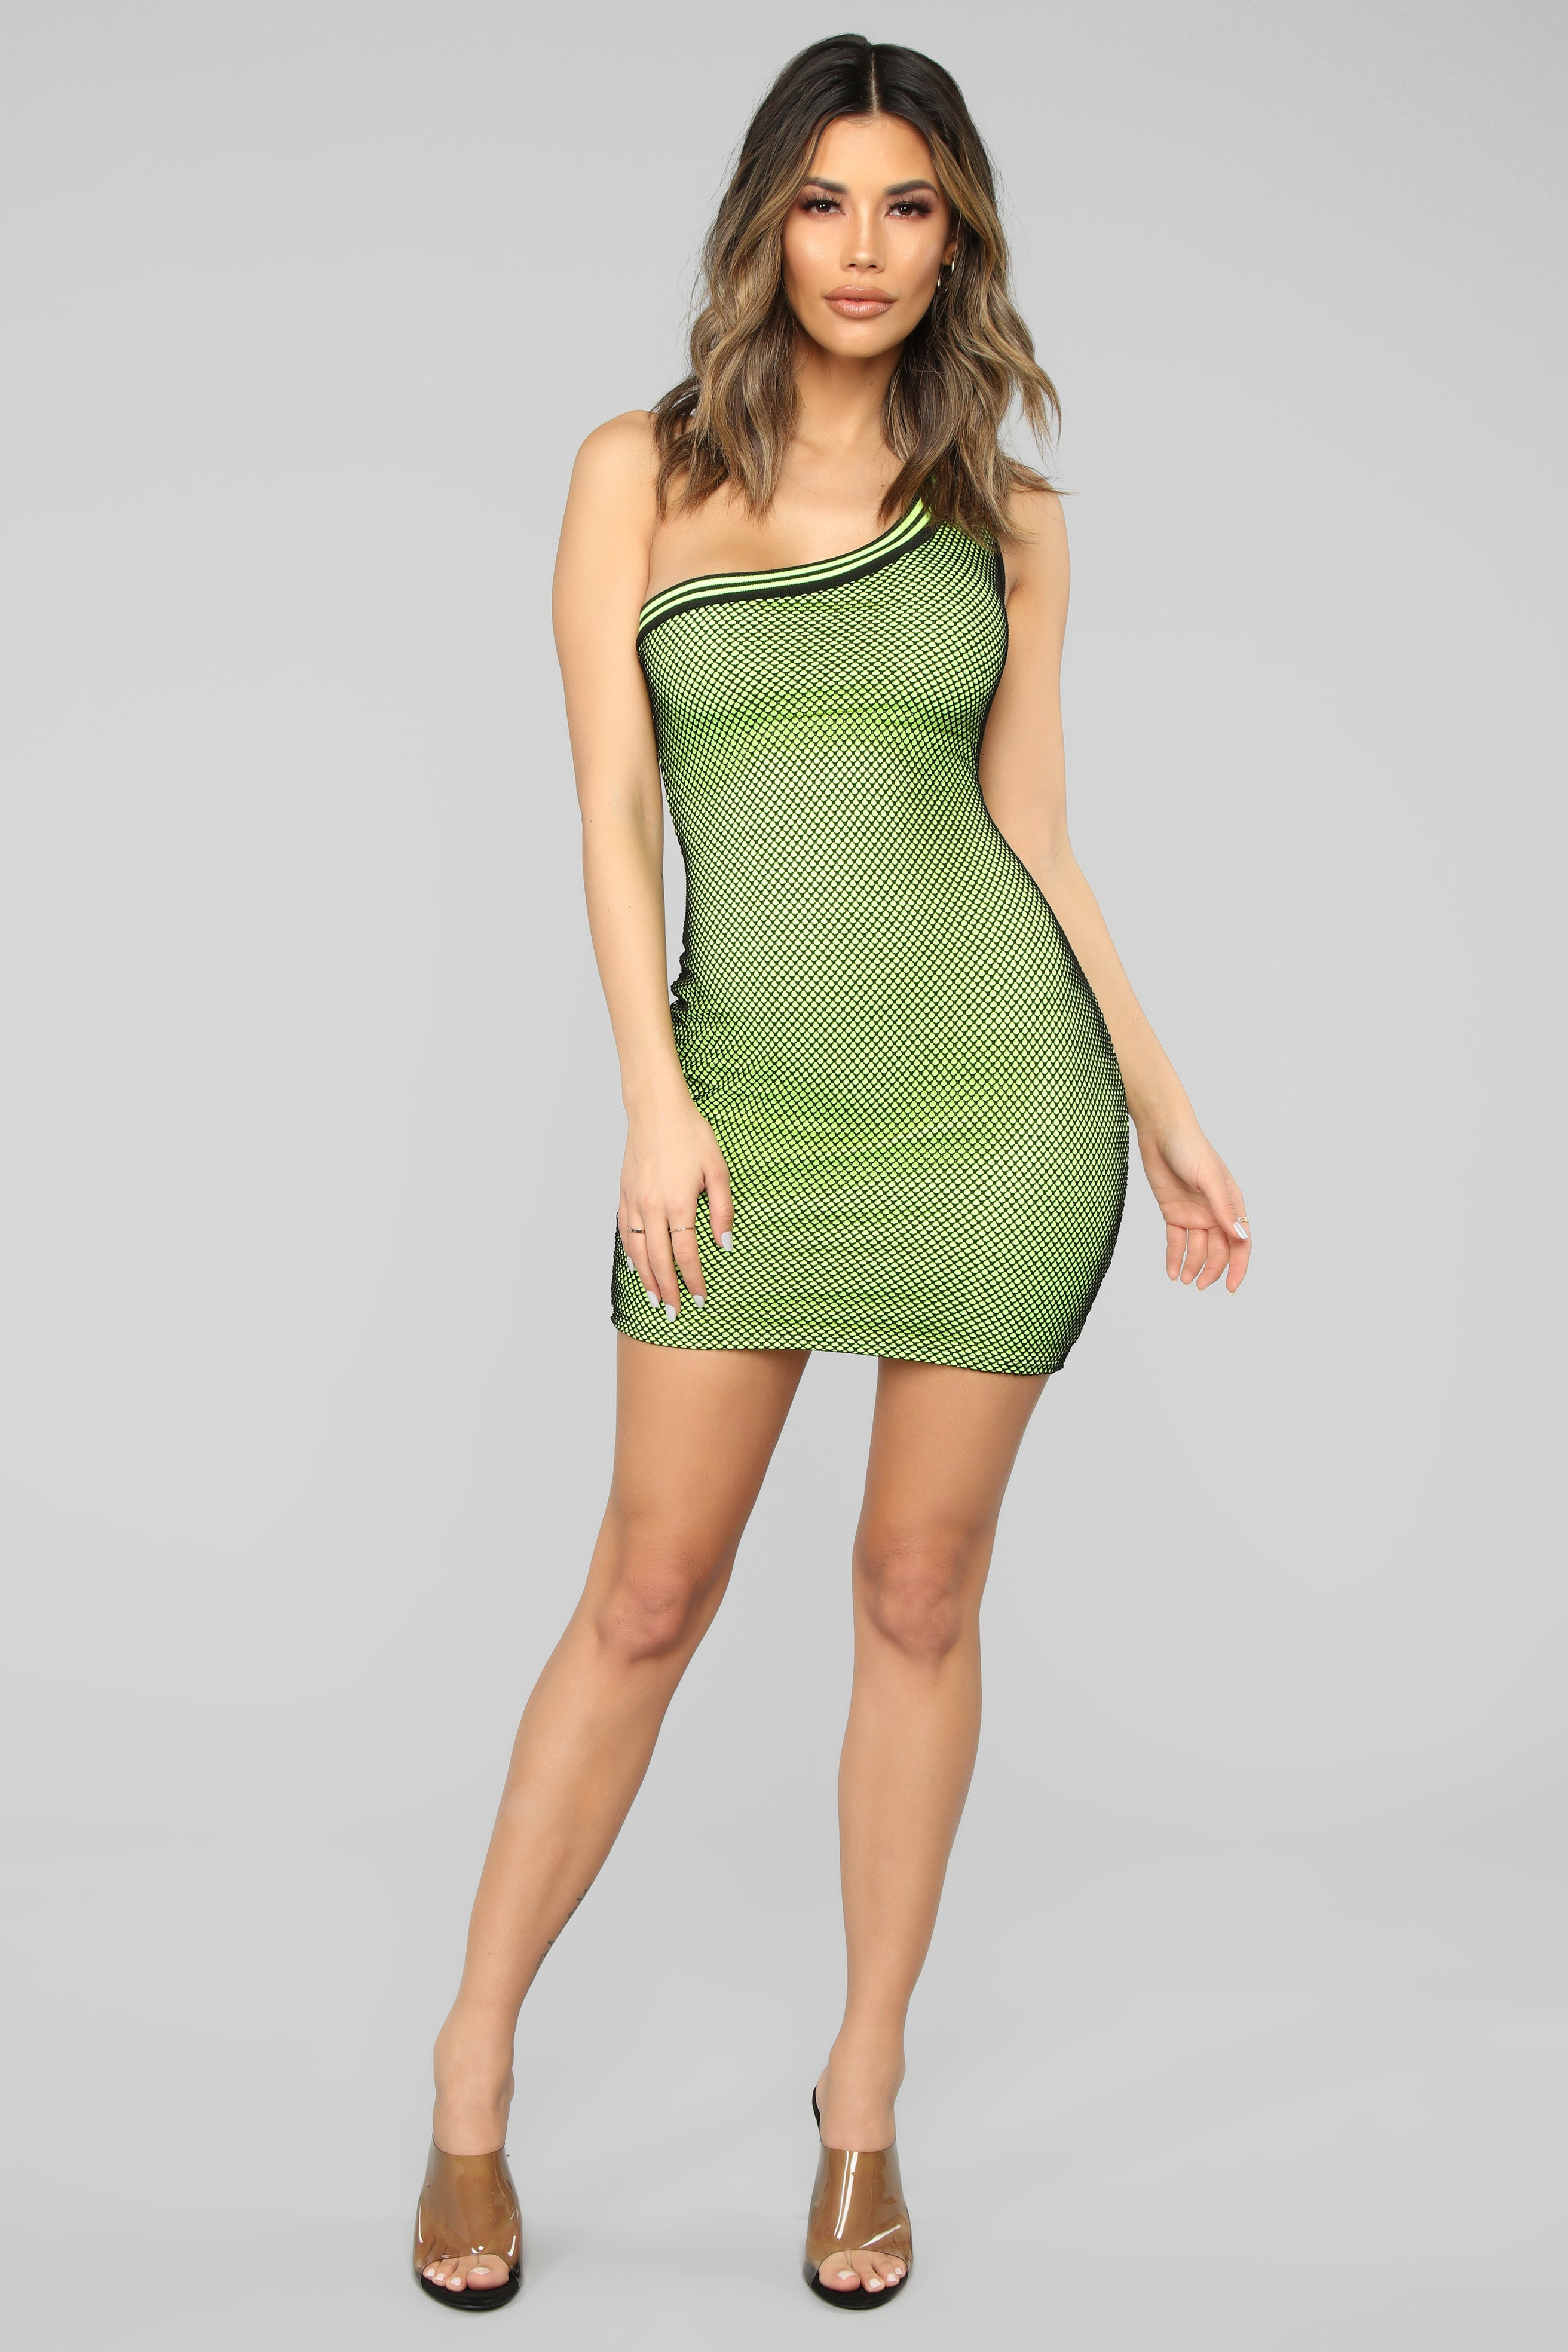 f890133fbcd Sexy For Sport One Shoulder Mini Dress - Neon Yellow